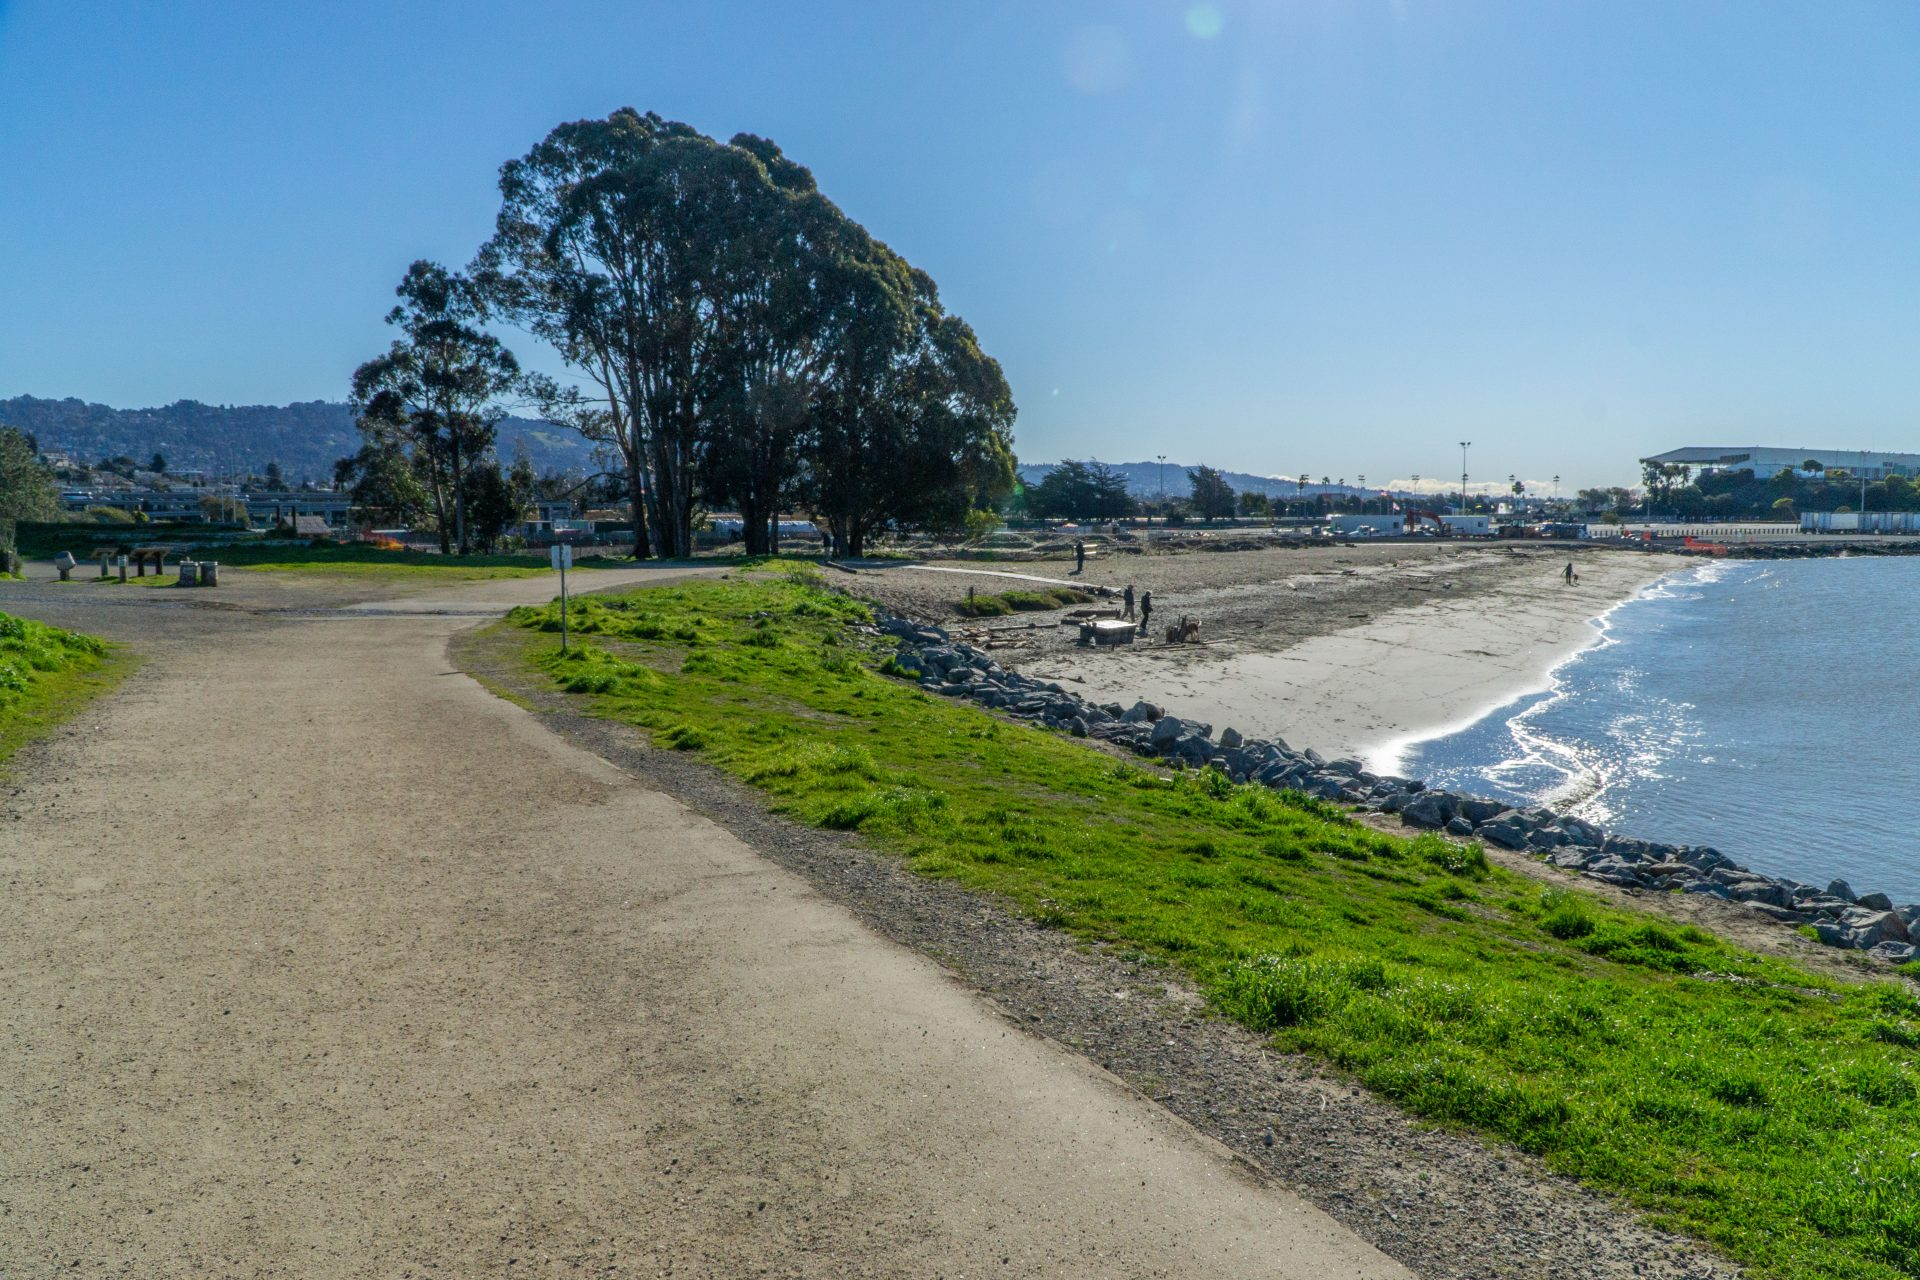 gravel path and green lawn, beach and bay on right